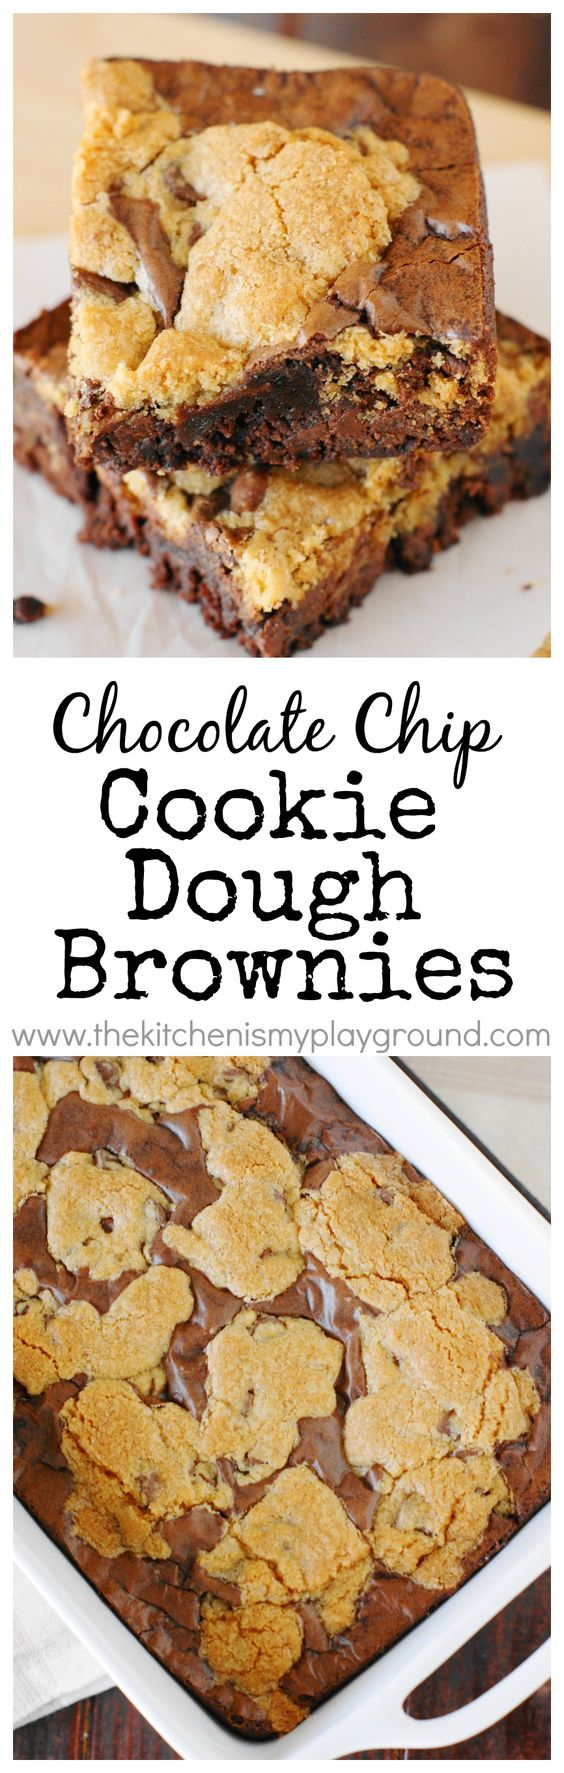 Chocolate chips, Chip cookies and Cookies on Pinterest